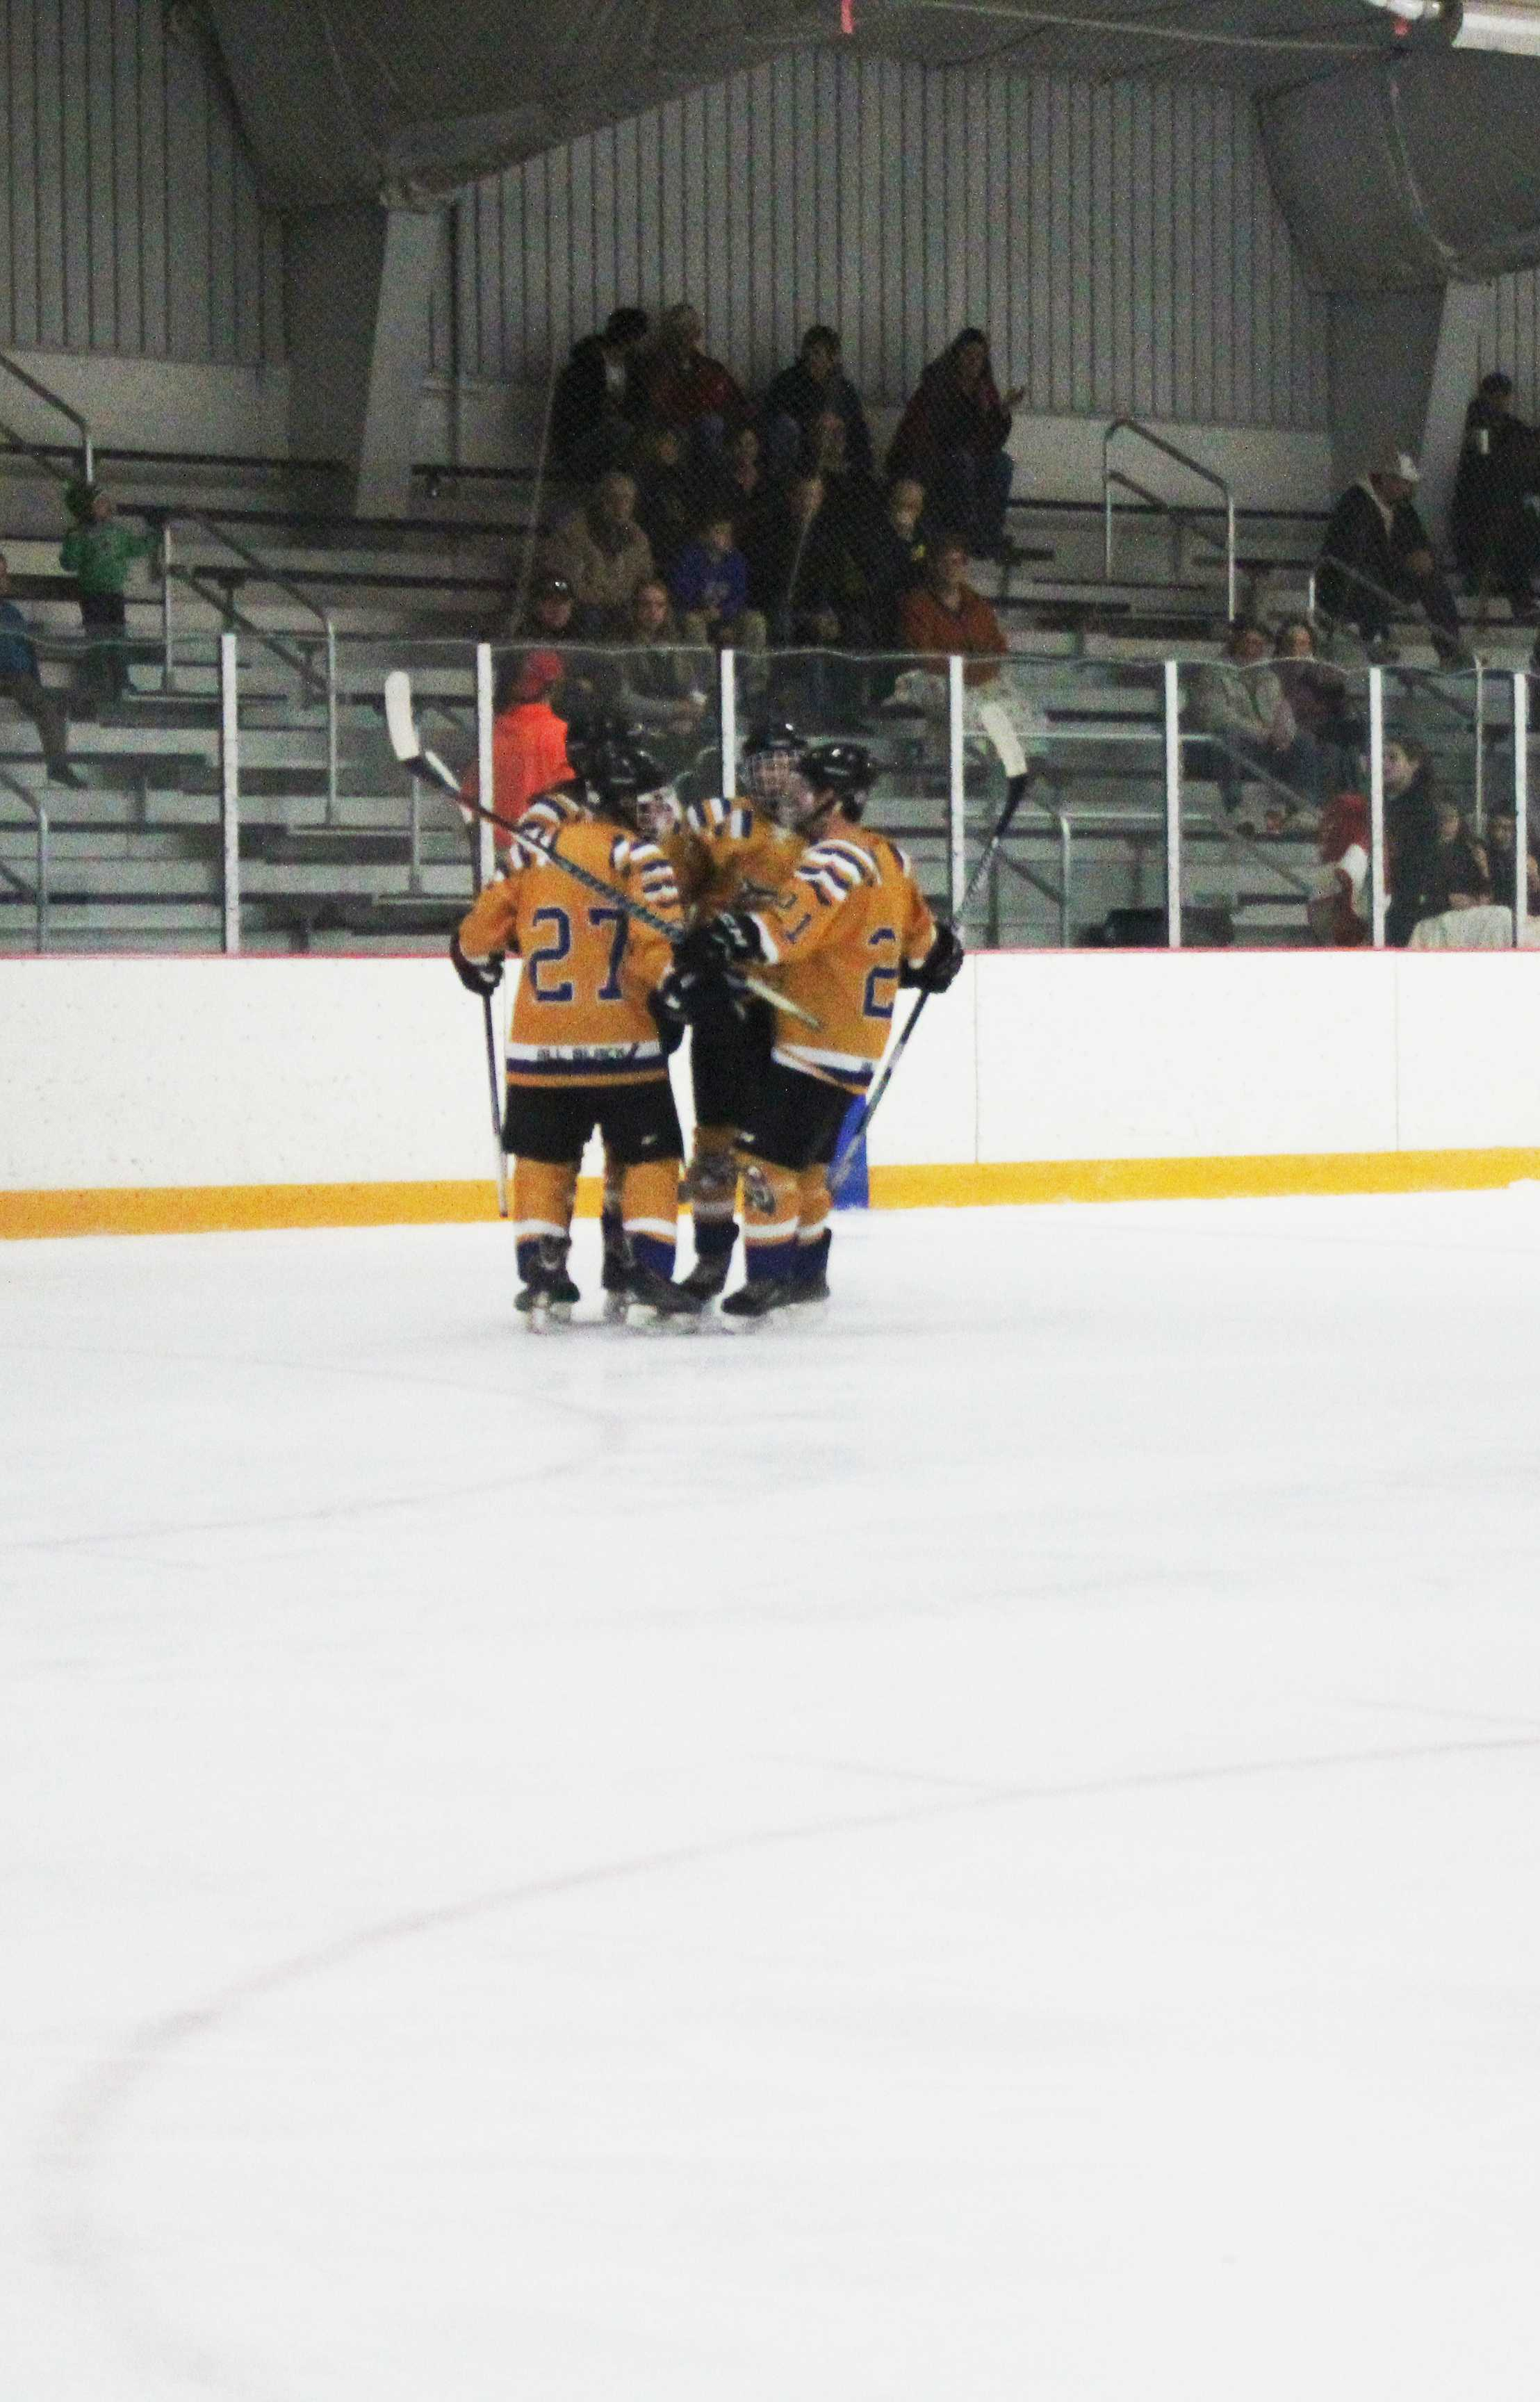 The Ocelots celebrate after the first goal of the game was made.